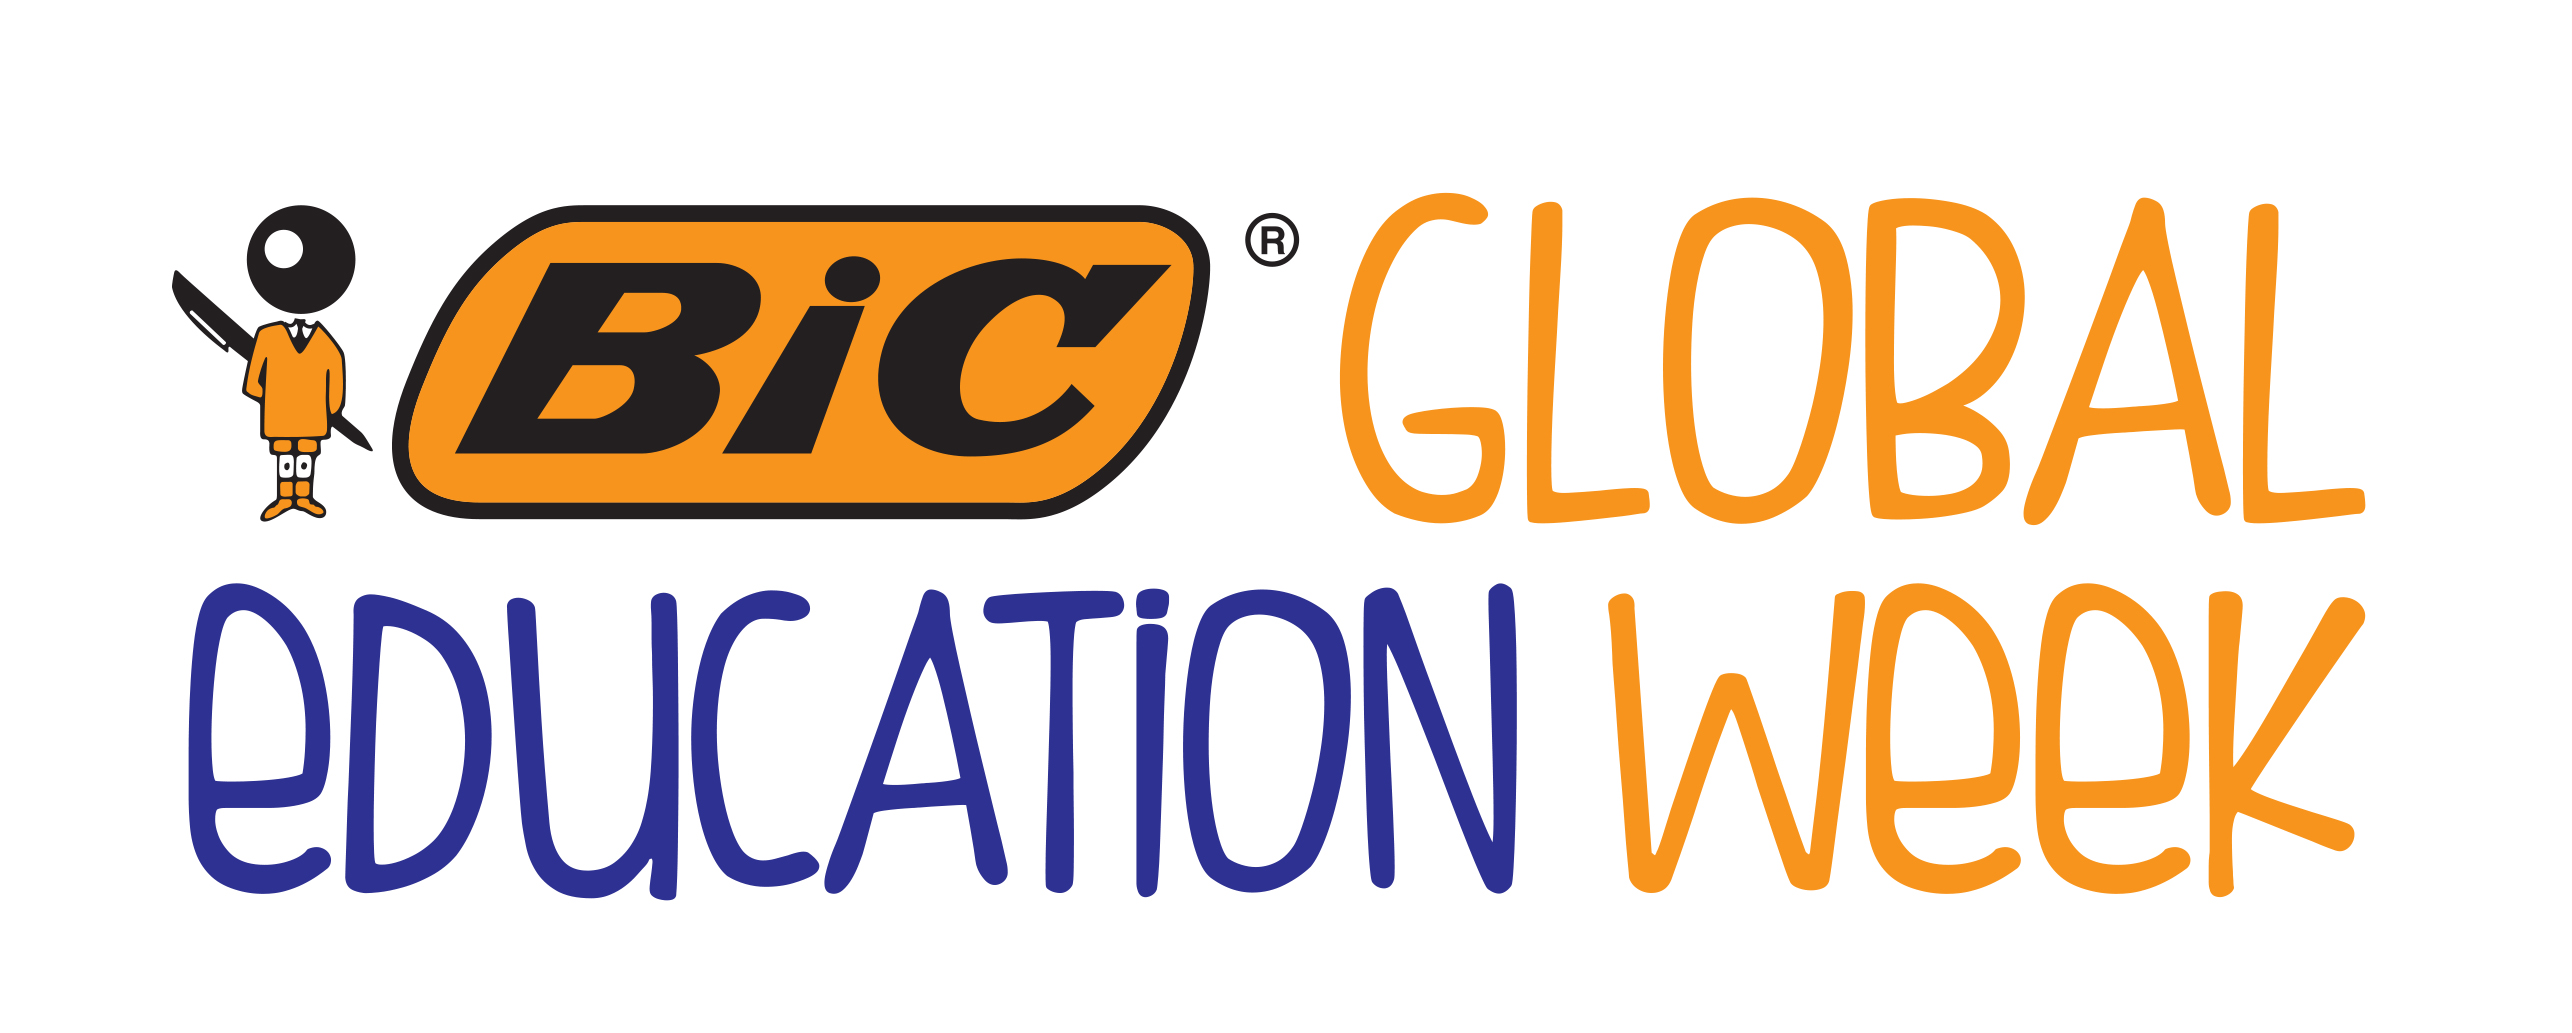 bic global education week logo